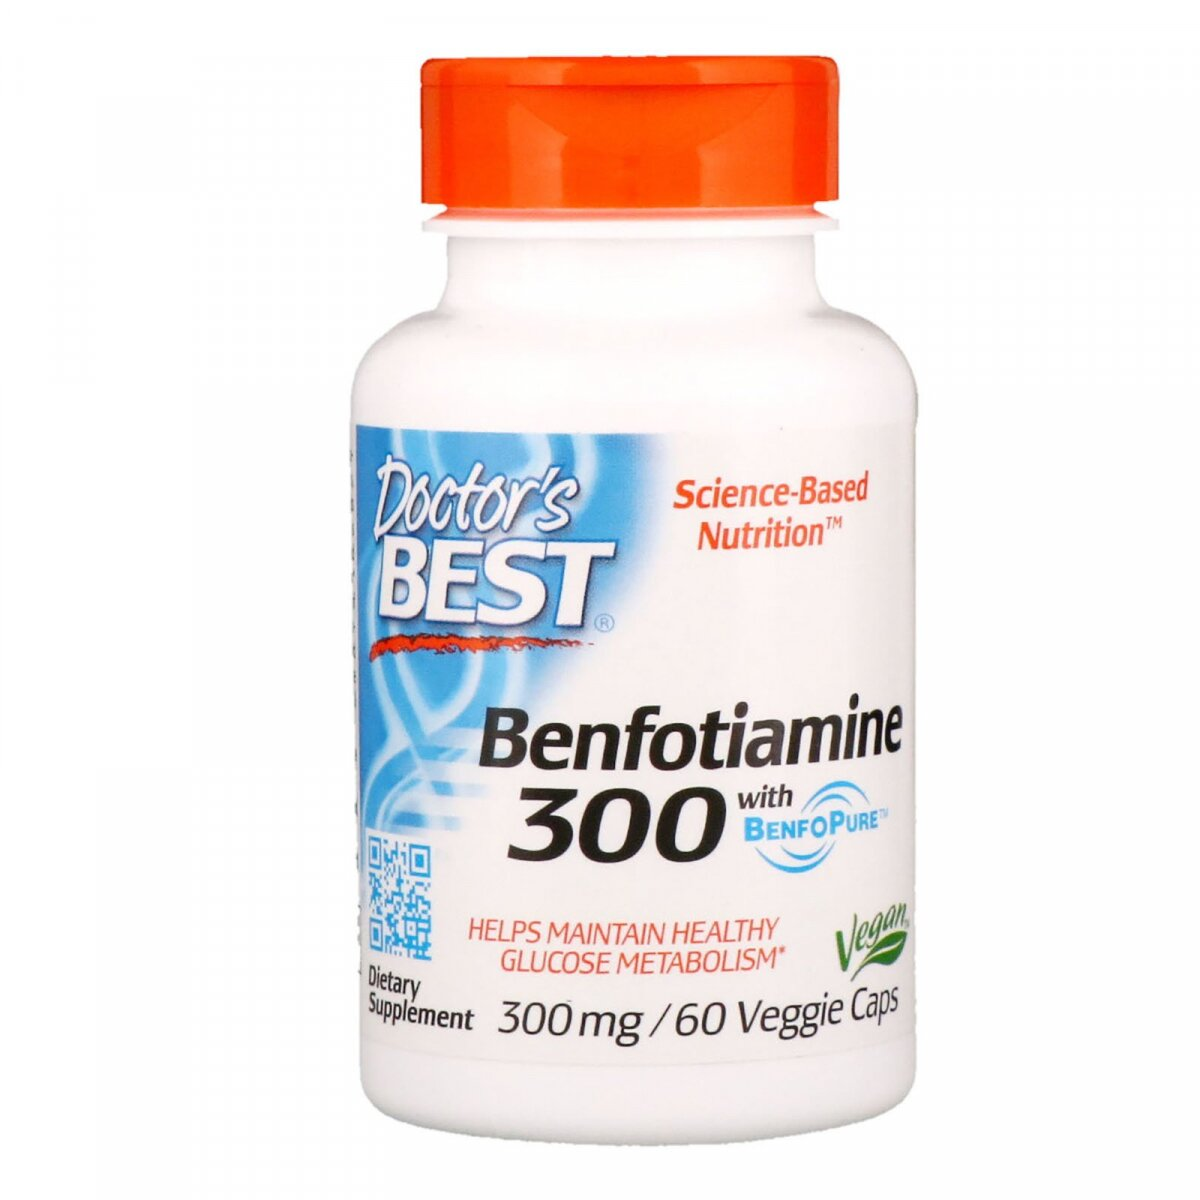 Бенфотиамин с BenfoPure, Doctor's Best, 300 мг, 60 вегетарианских капсул